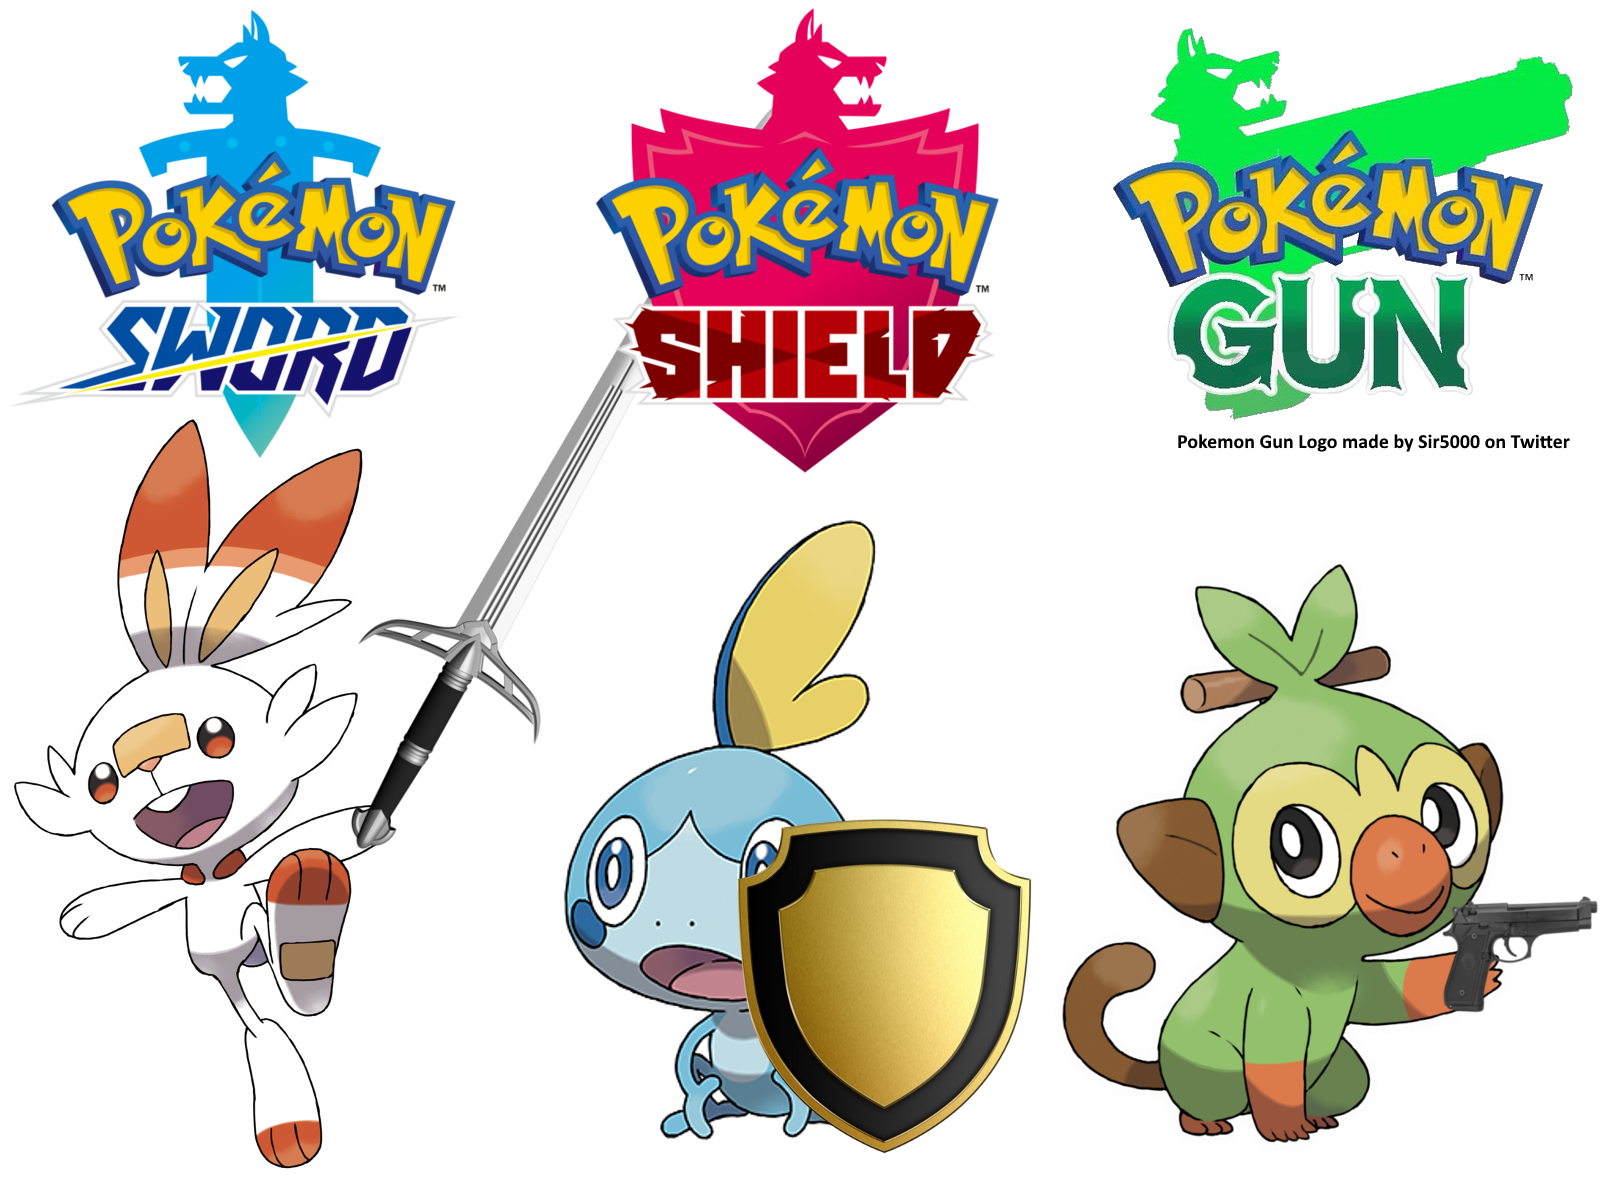 Pokemon Sword Shield And Gun By Thegamerlover On Deviantart Check out inspiring examples of grookey_with_a_gun artwork on deviantart, and get inspired by our community of talented artists. pokemon sword shield and gun by